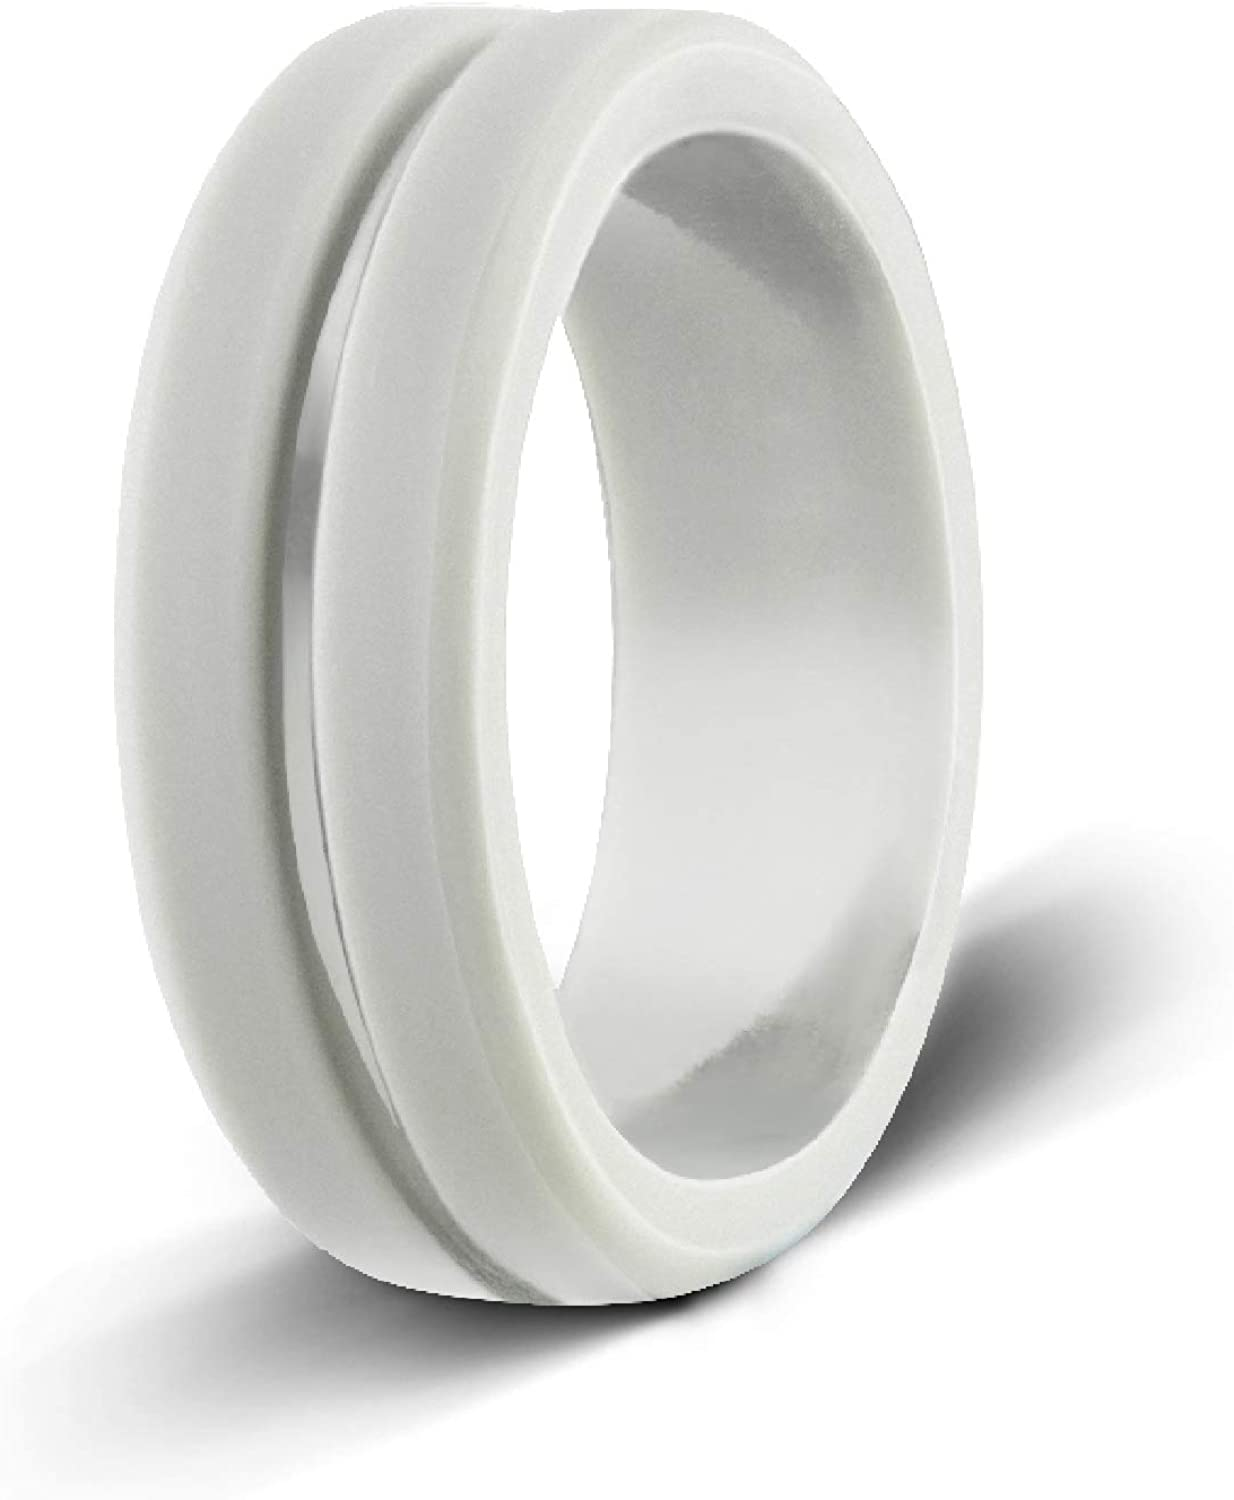 It is a graphic of Egnaro Silicone Wedding Ring,Premium Silicone Wedding Bands for Men,Rubber Bands,Flexible,Skin Safe &Comfortable